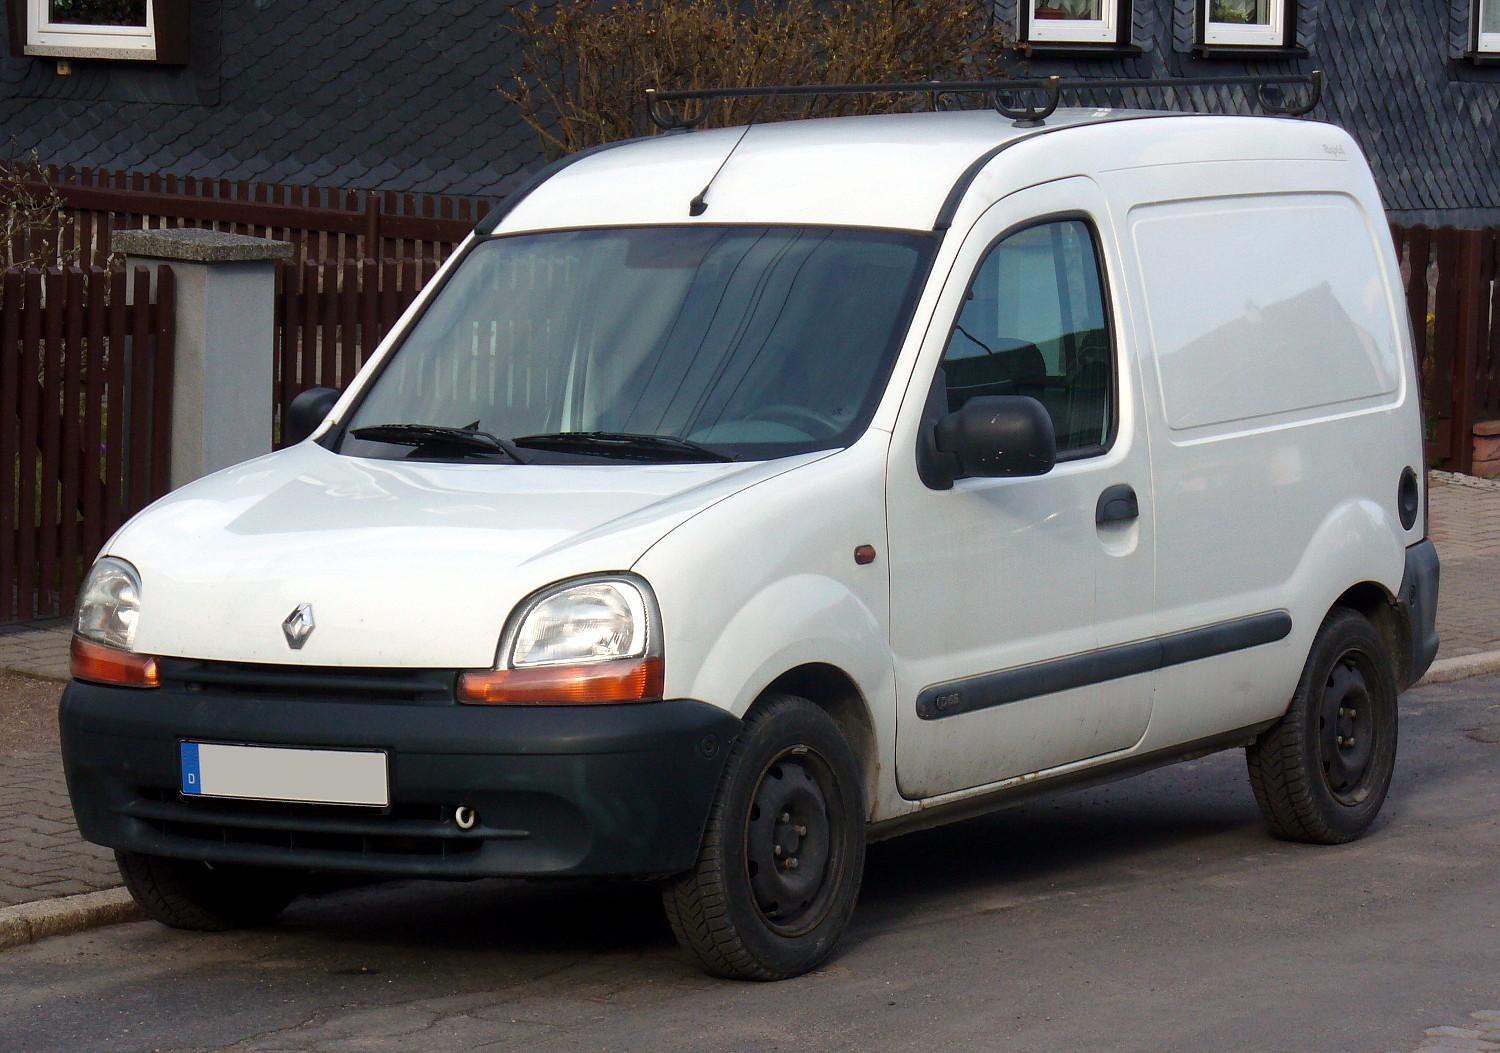 fichier renault kangoo i rapid phase i d65 jpg wikip dia. Black Bedroom Furniture Sets. Home Design Ideas